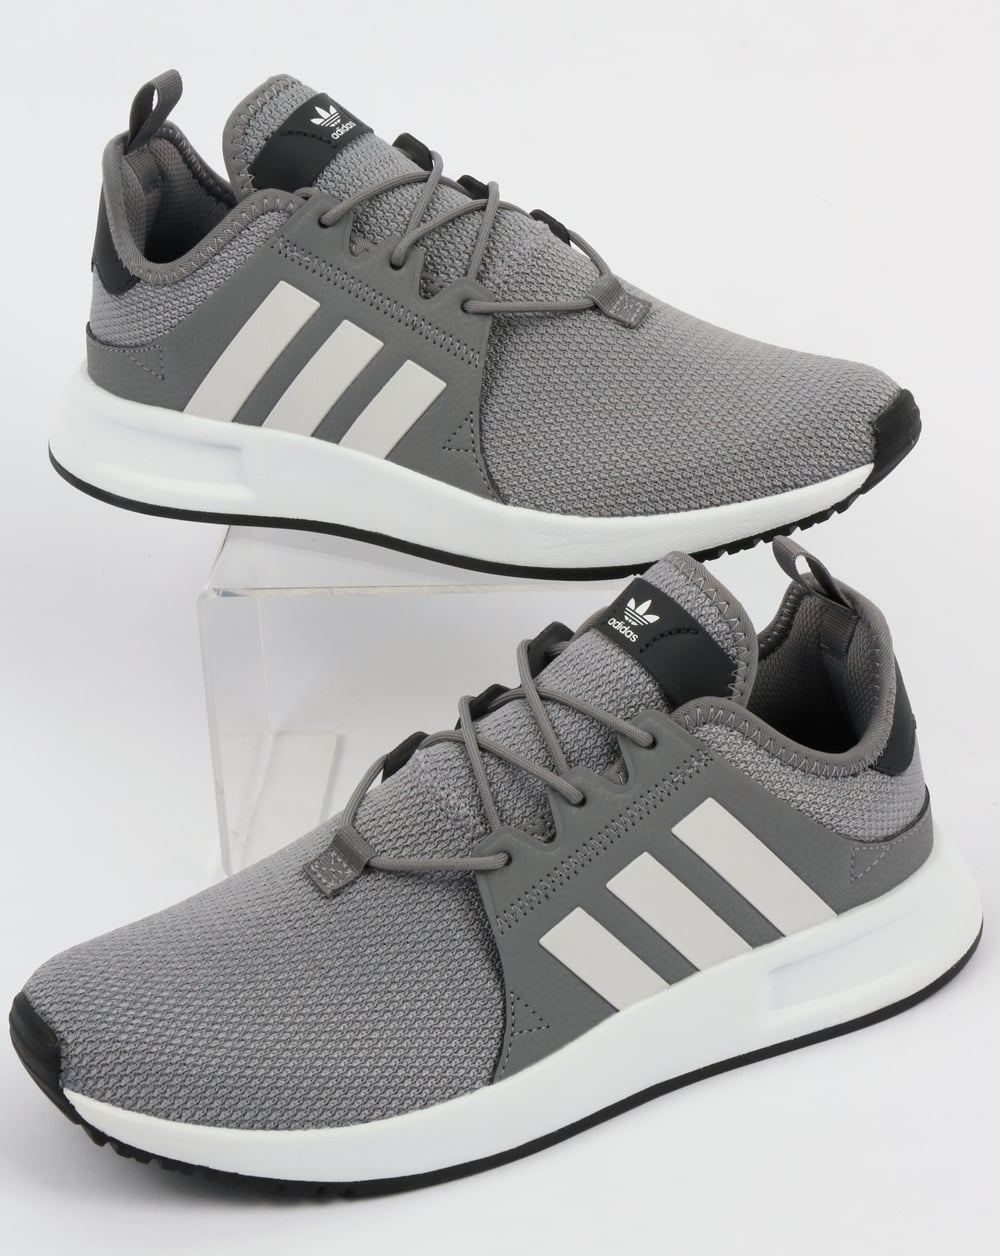 new style 5c162 5d00f Adidas XPLR Trainers Grey  White Carbon